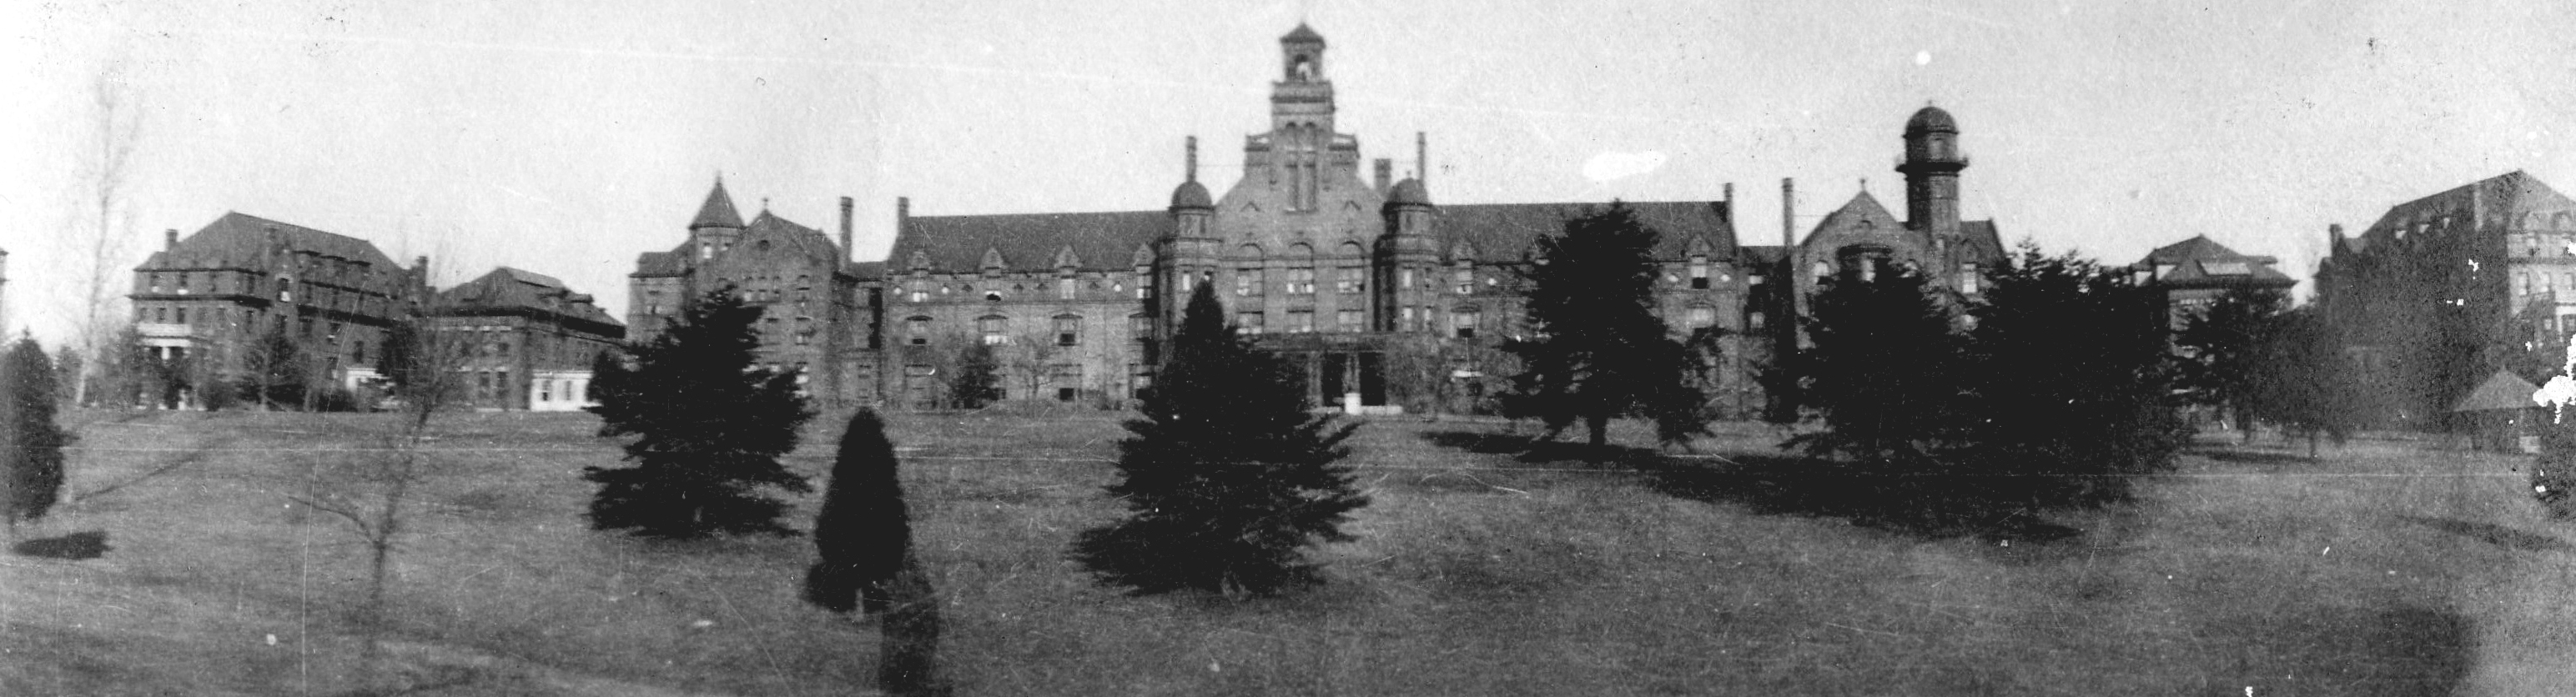 Photo of Randolph College in the early 1900s.